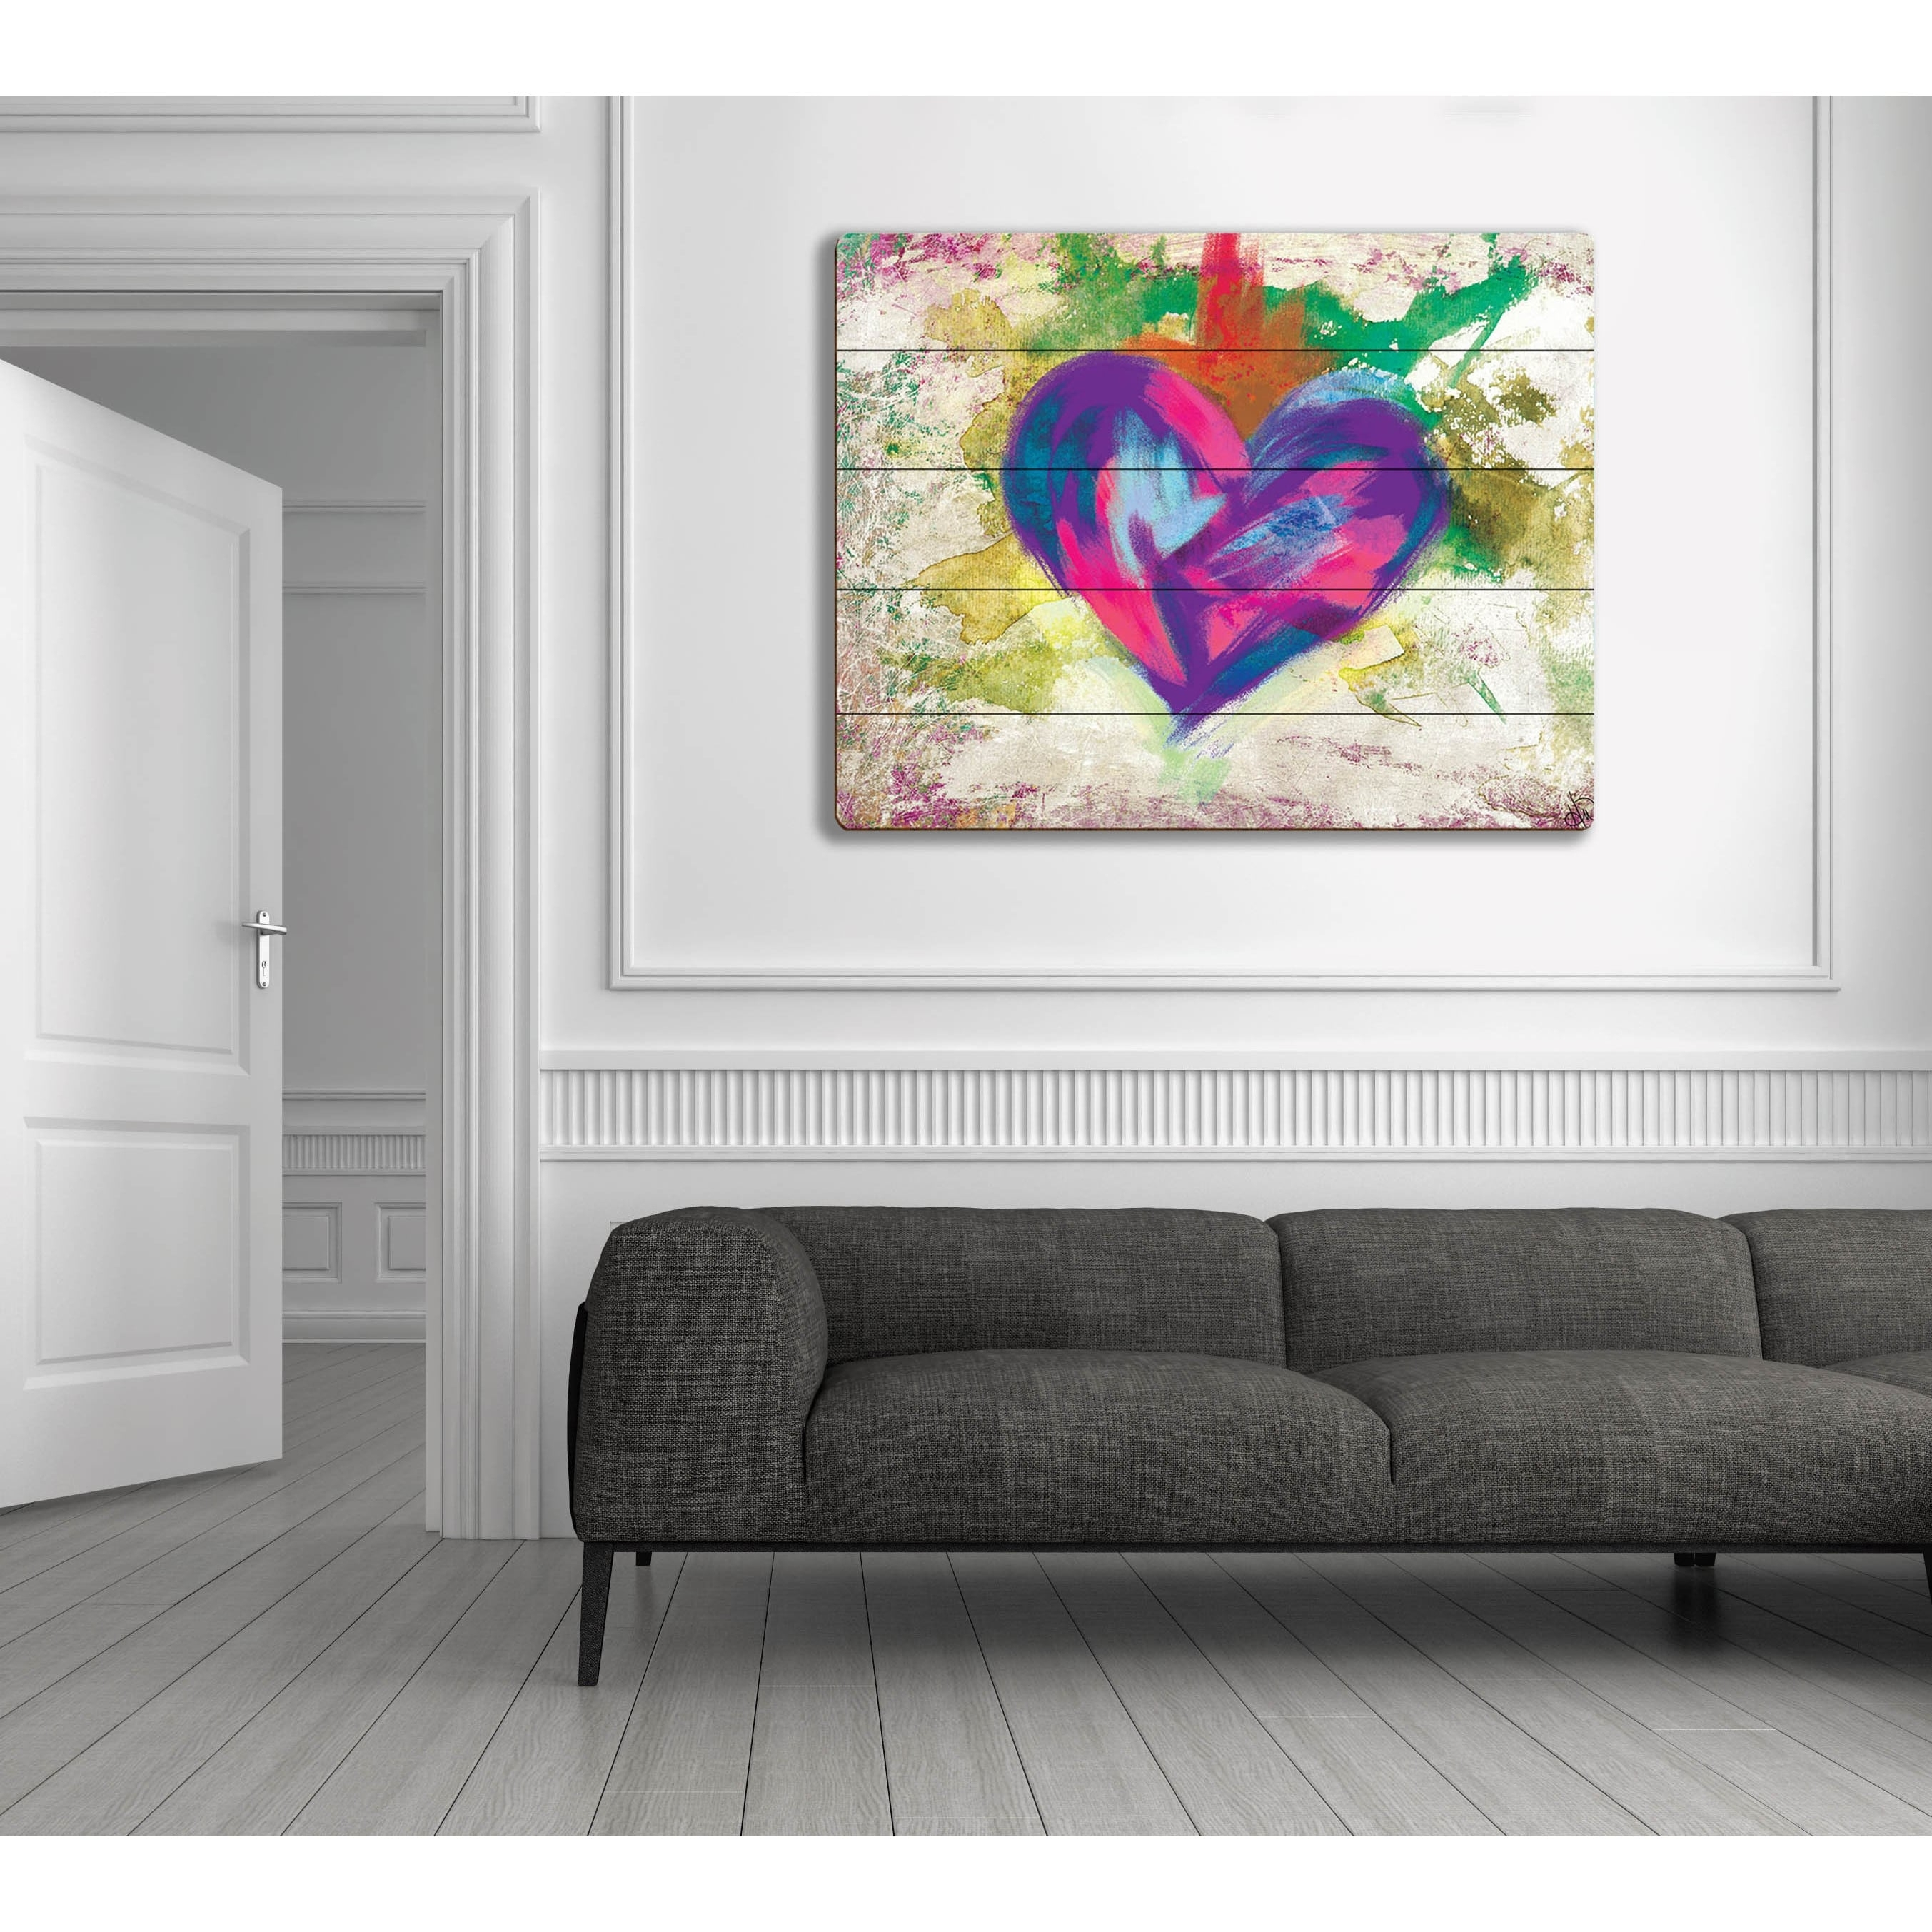 Up Beat Violet Abstract Heart Wall Art On Wood – Free Shipping For Best And Newest Abstract Heart Wall Art (View 16 of 20)